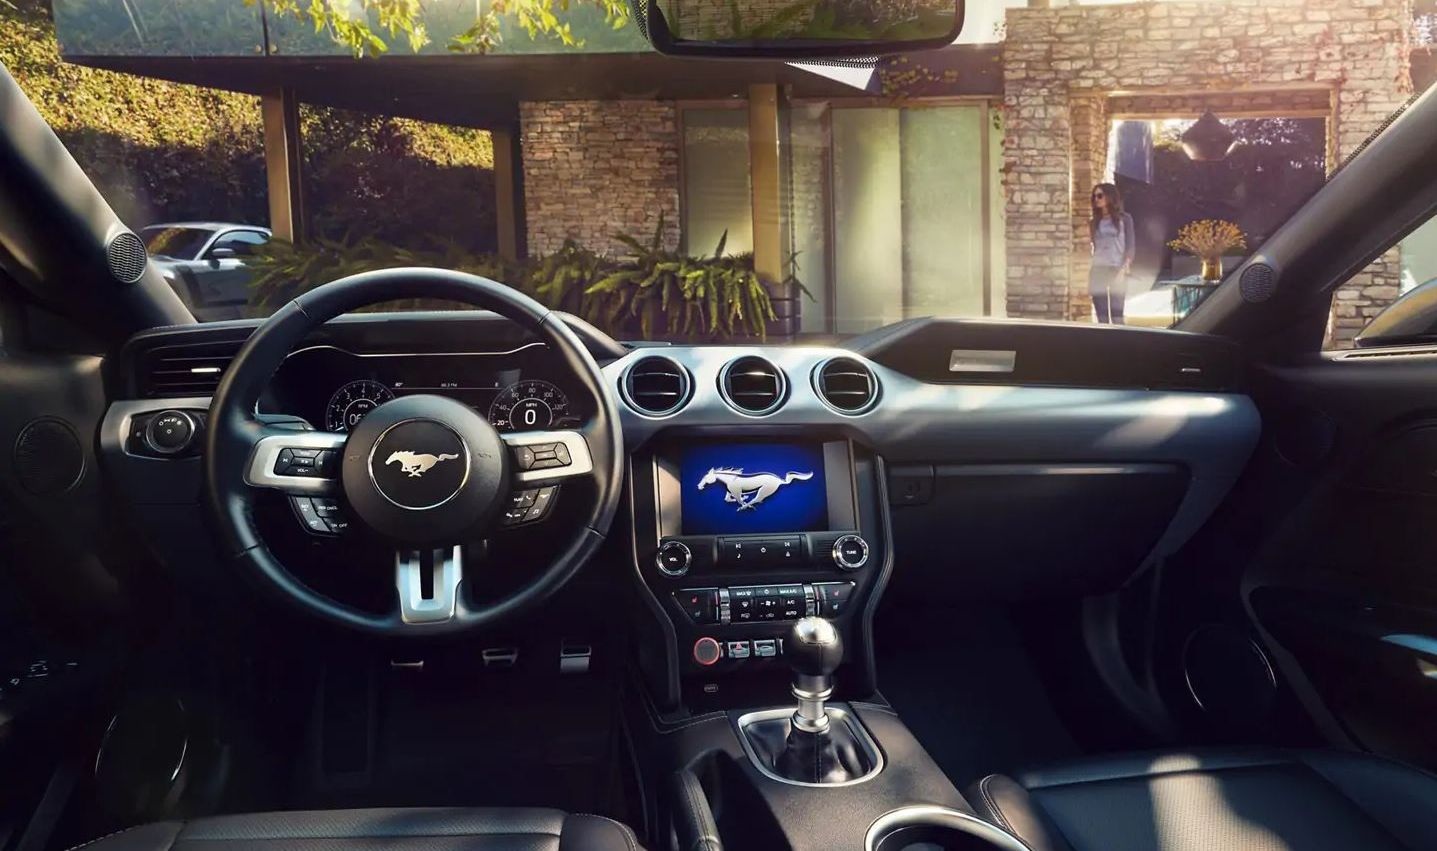 2019 Ford Mustang Dashboard